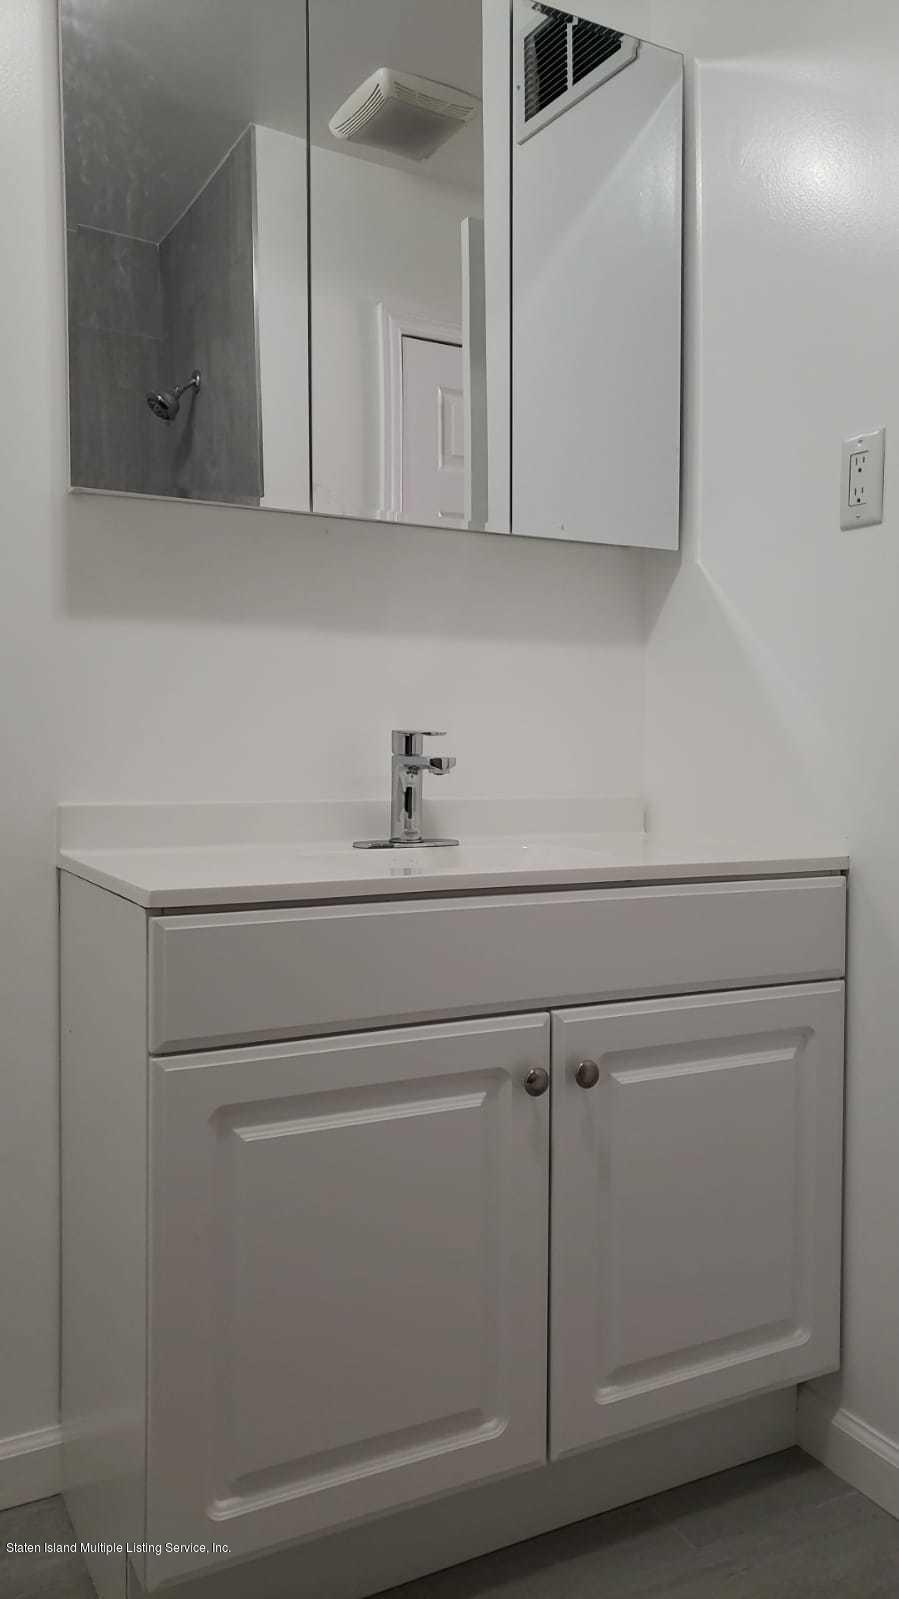 Single Family - Semi-Attached 505 Foster Road  Staten Island, NY 10309, MLS-1124398-12